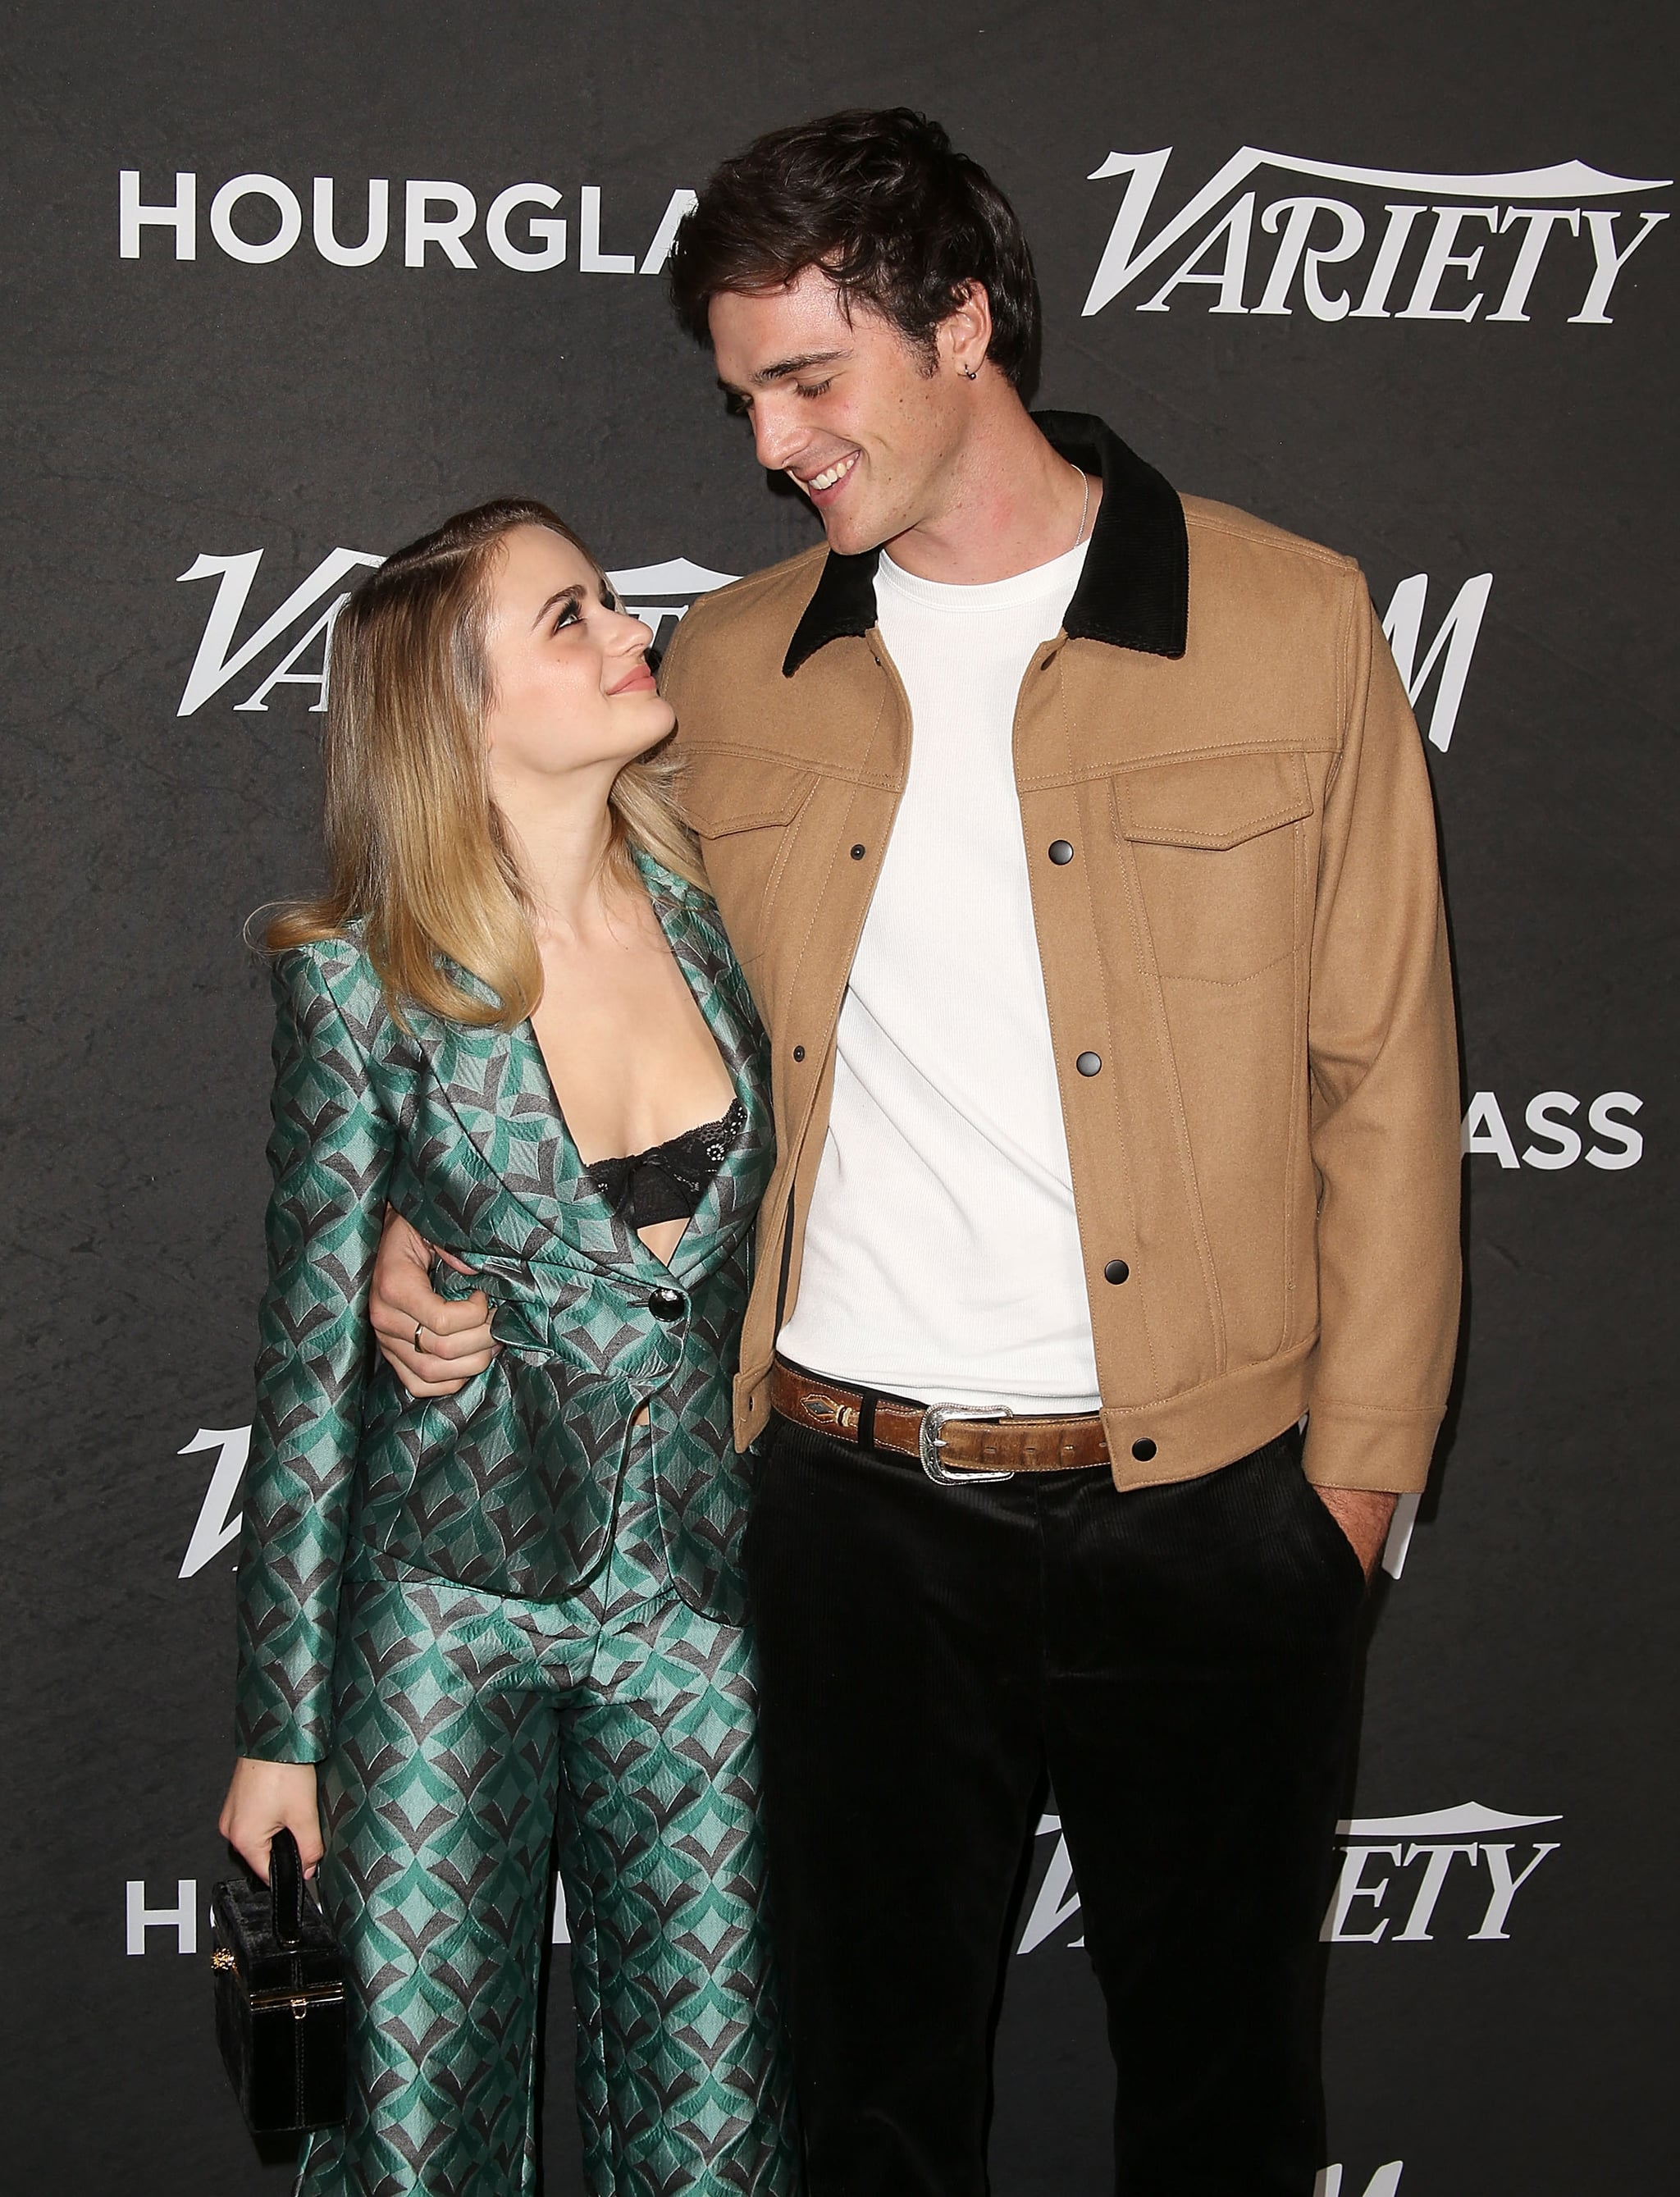 WEST HOLLYWOOD, CA - AUGUST 28:  Joey King and Jacob Elordi attend Variety's Power of Young Hollywood event at the Sunset Tower Hotel on August 28, 2018 in West Hollywood, California.  (Photo by Jesse Grant/WireImage)